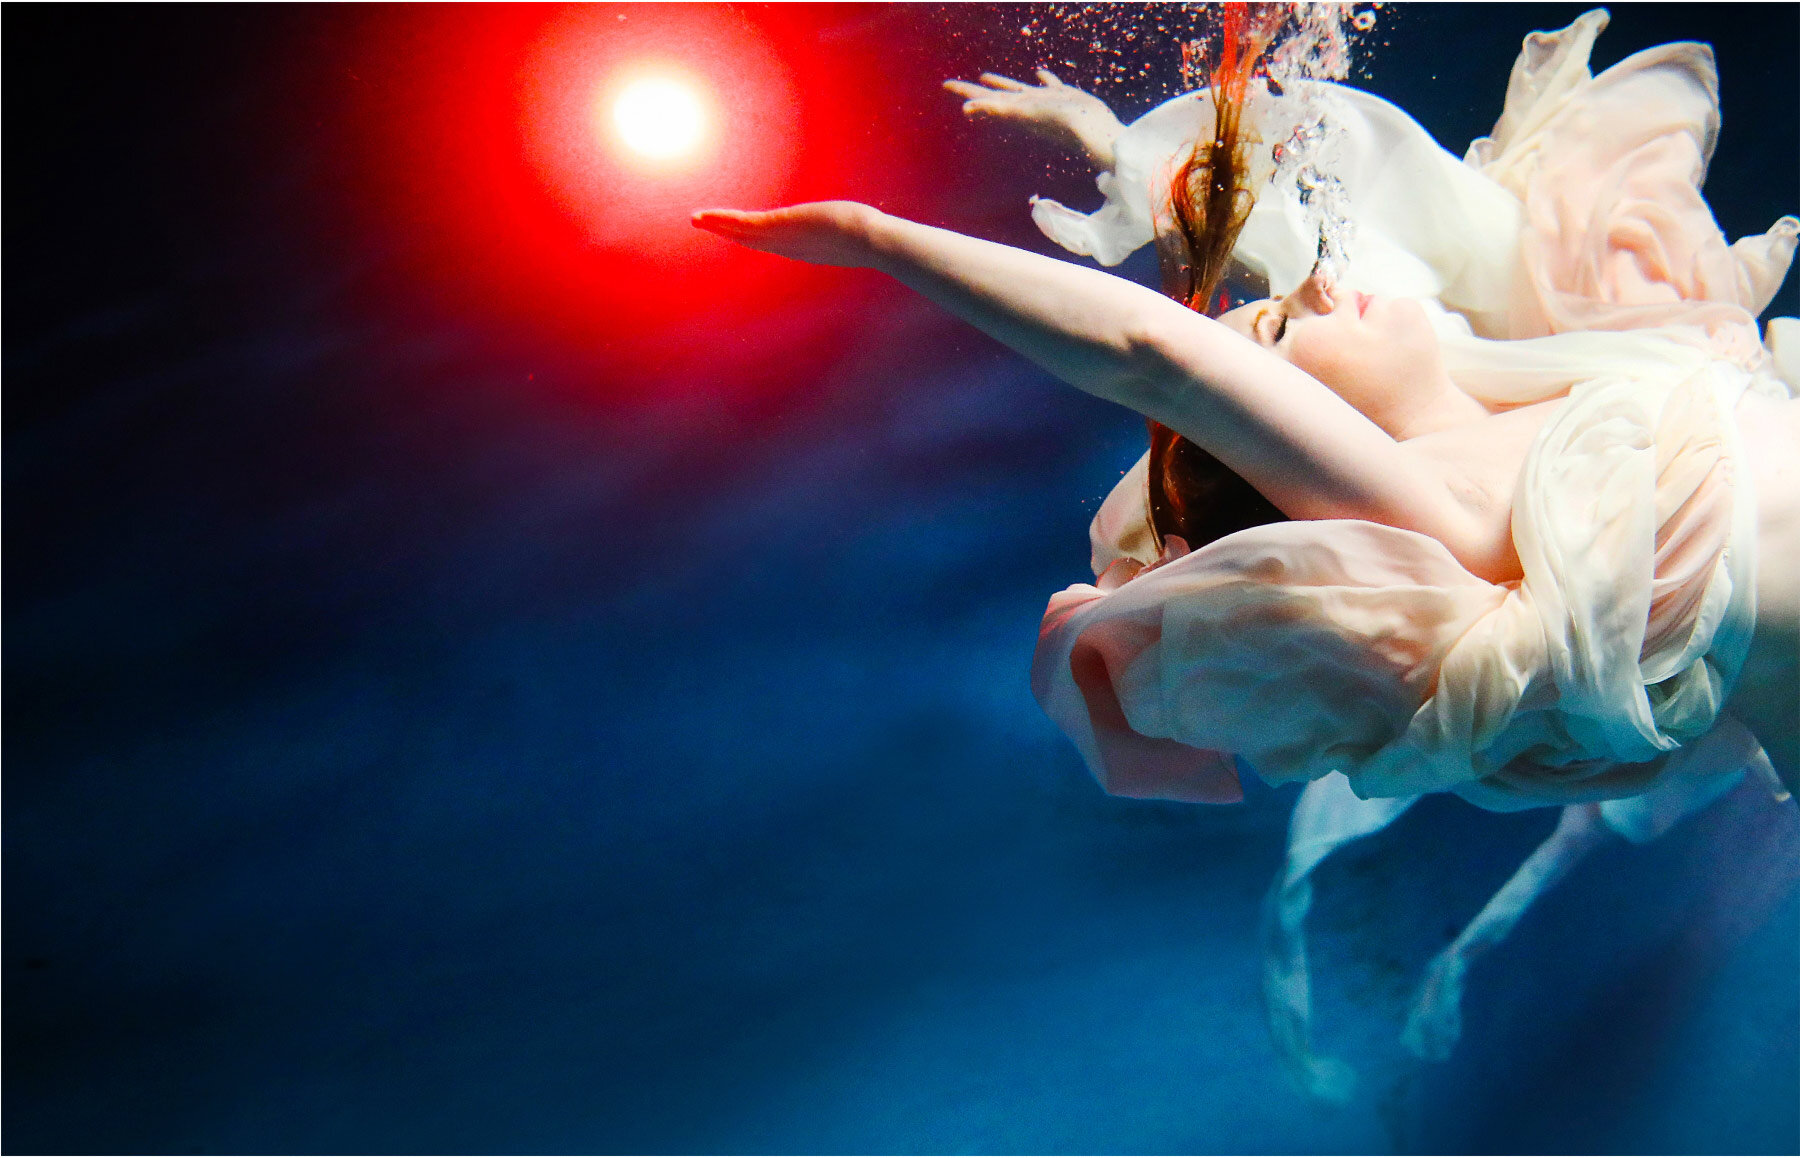 06-Vick-Studios-Maternity-Baby-Bump-Photo-Session-Mother-Pool-Underwater-Dress-Night-Carrie-and-Brian.jpg